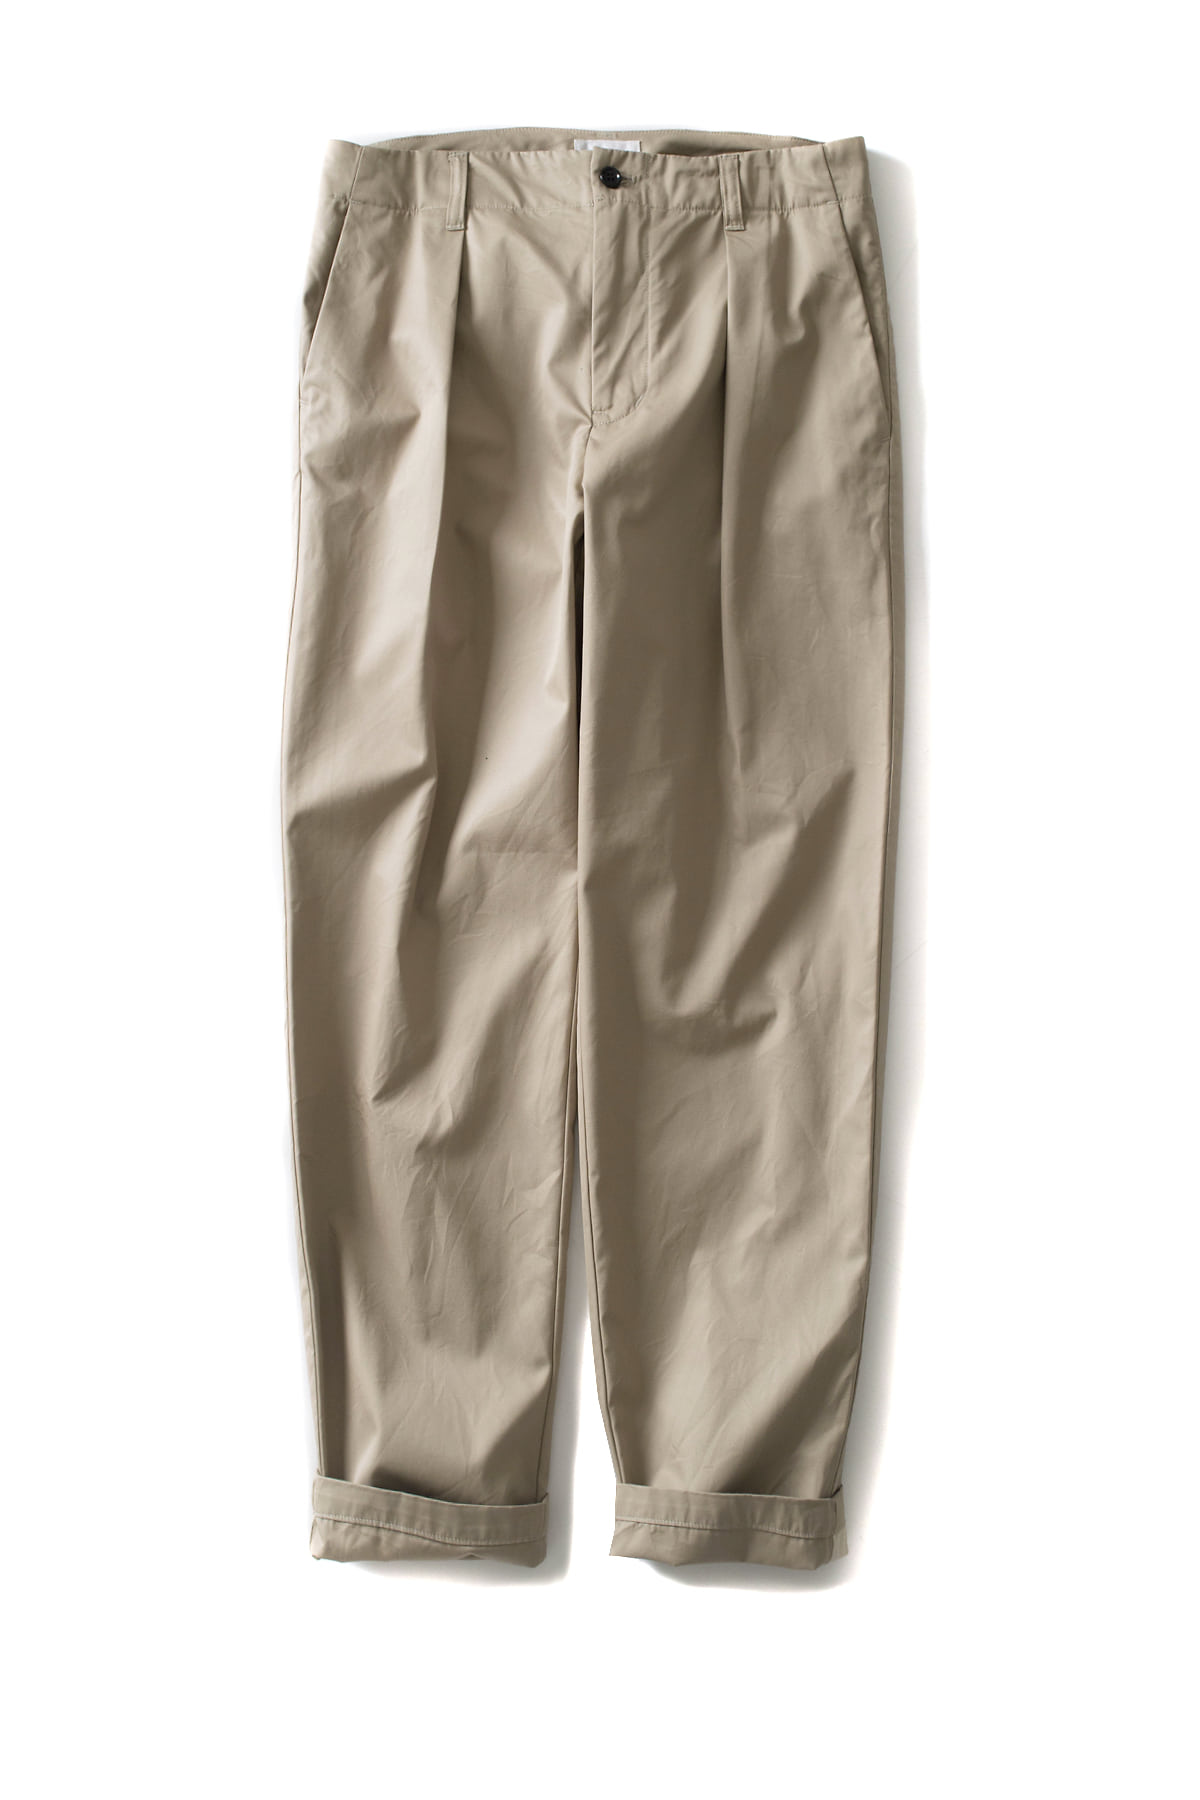 Still by Hand : Deep Tuck Twill Slacks (Beige)